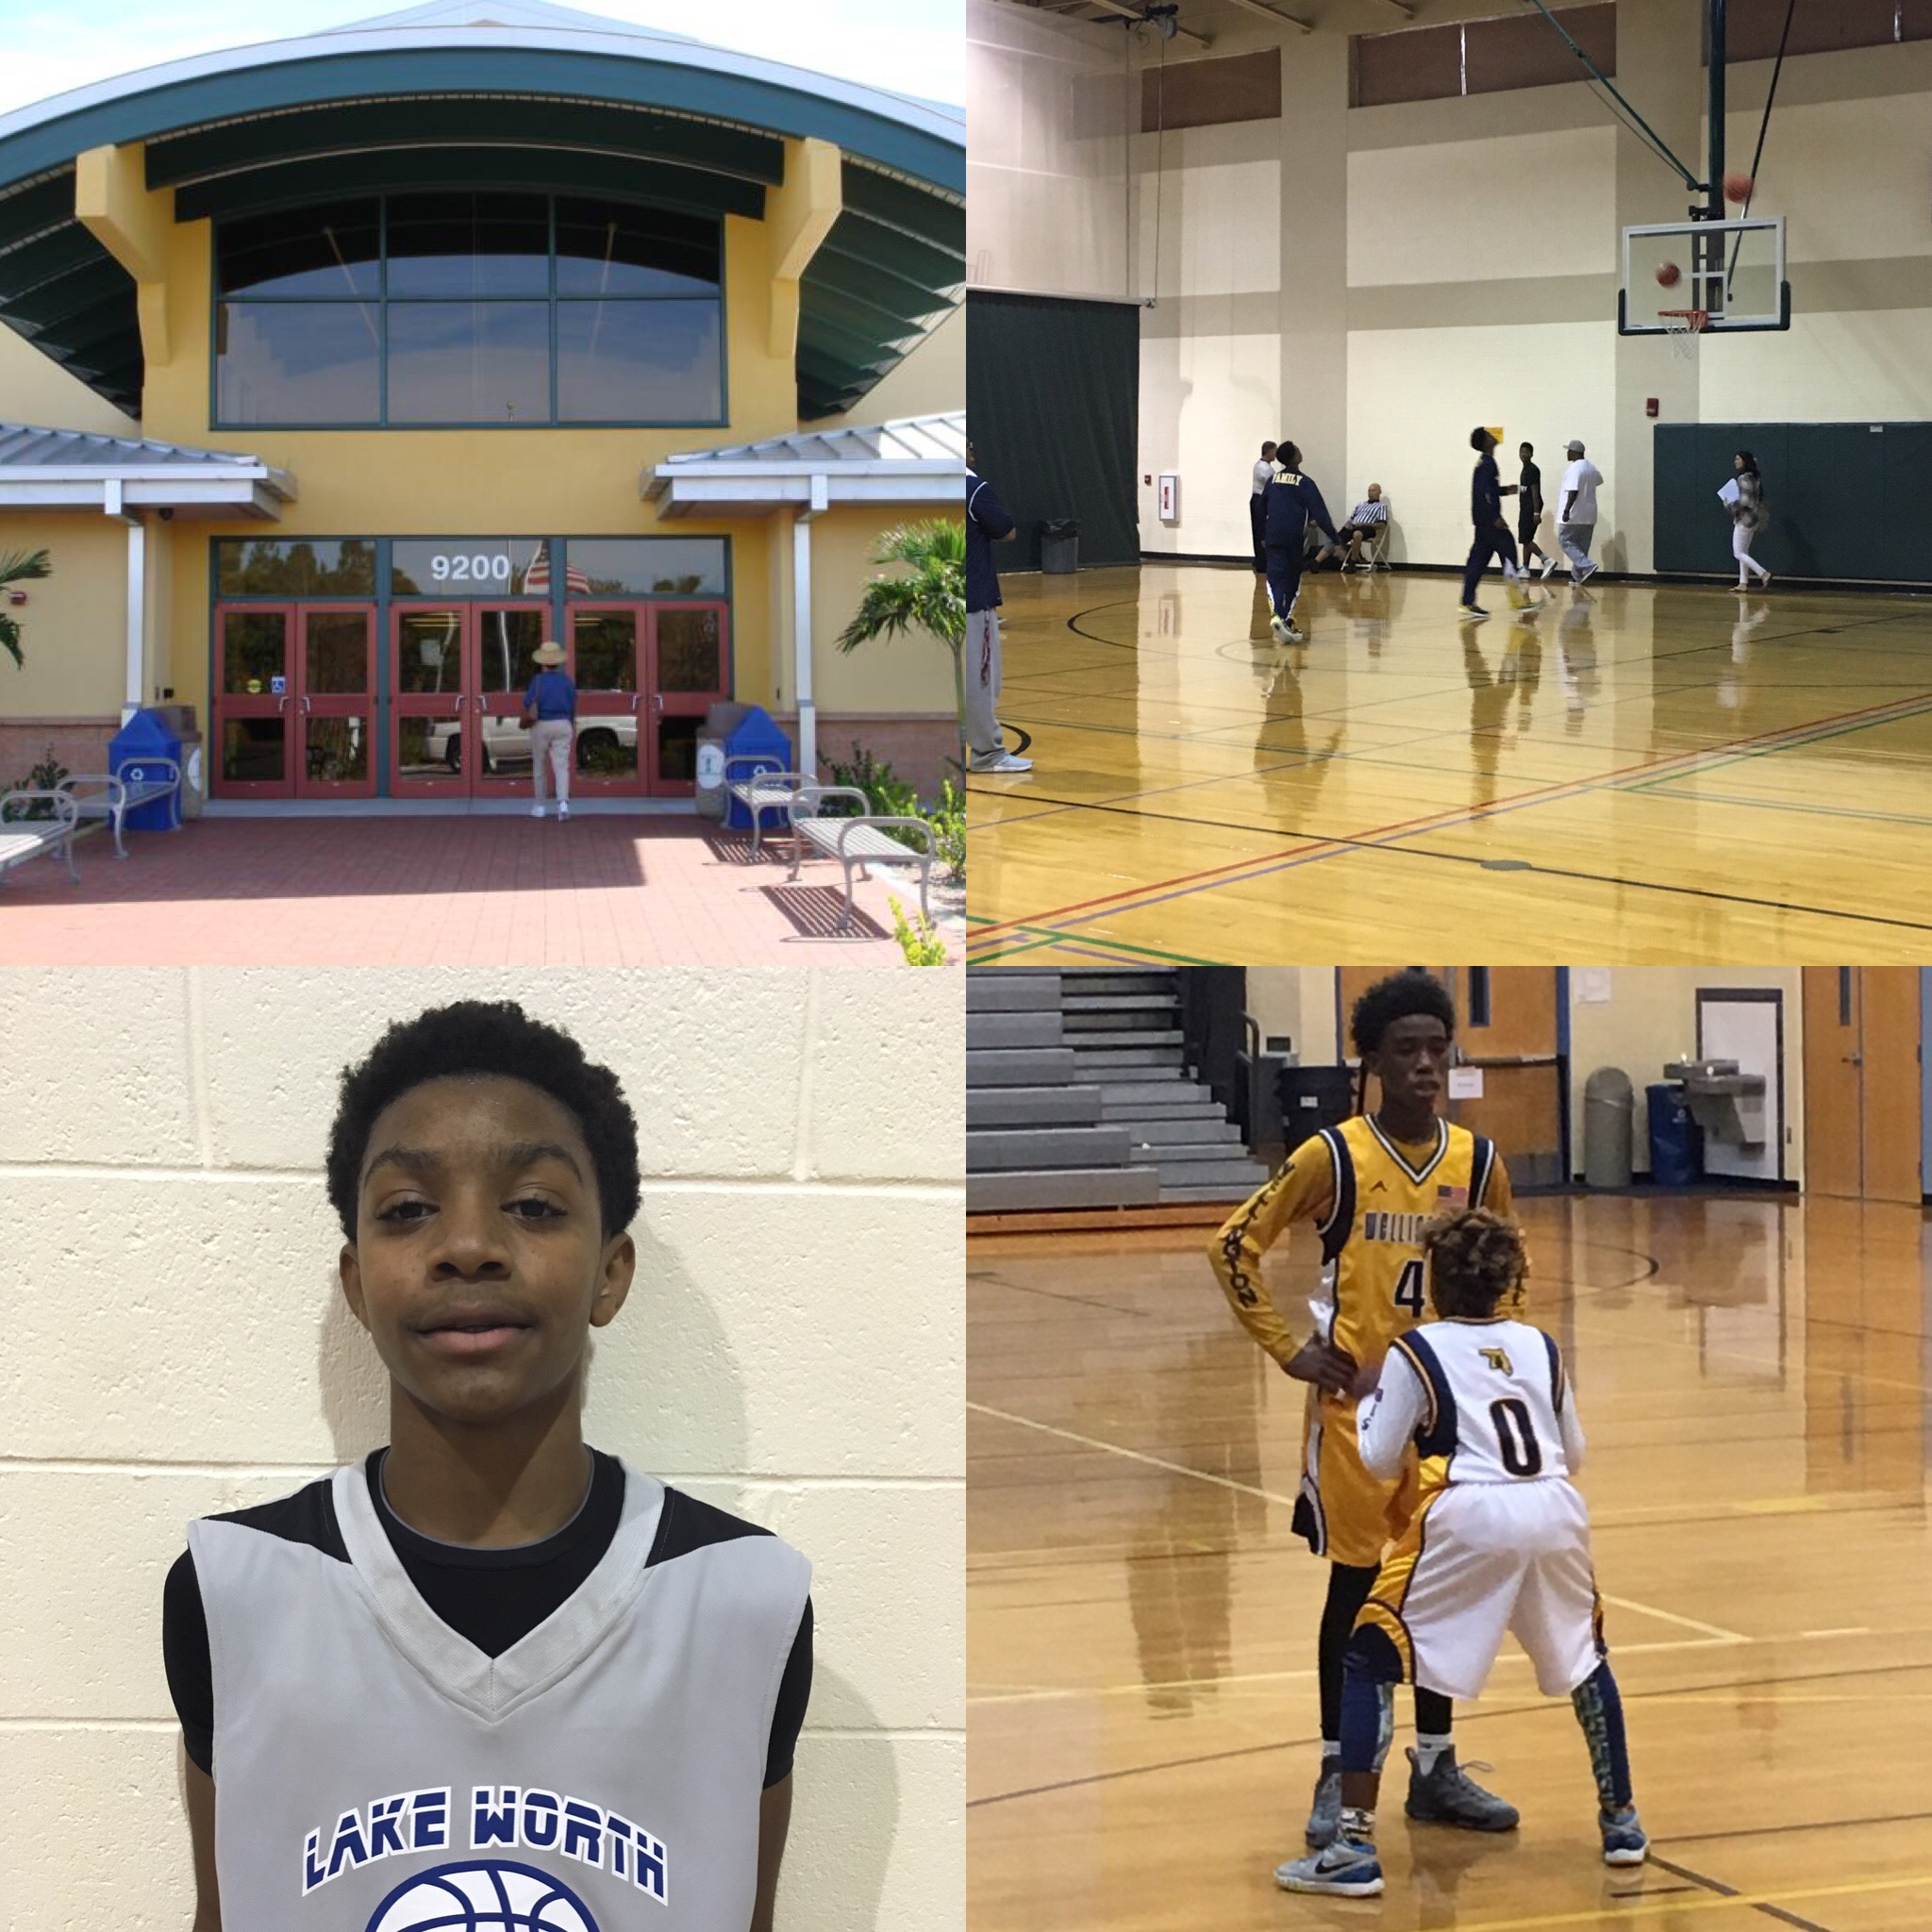 Grade School Travel Season Kicked Into Full Gear This Past Weekend In Fort Myers FL As Tony Perkins Hosted His Now Annual Early AAU Event For